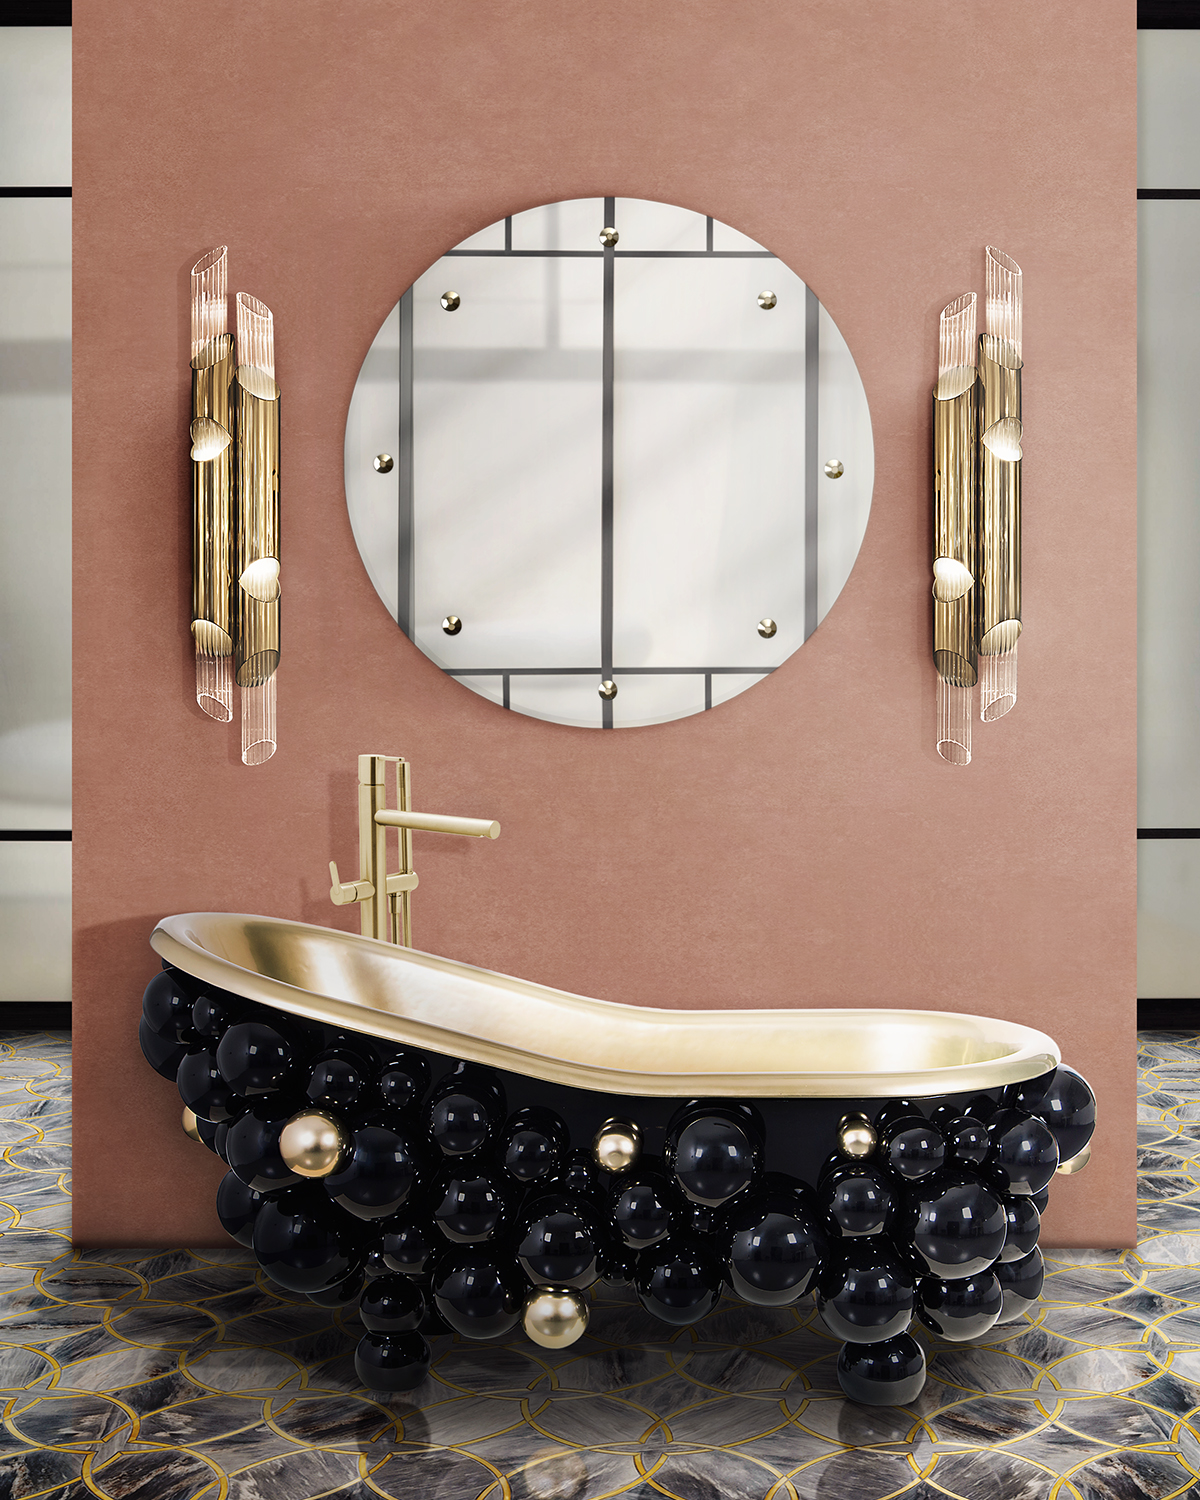 Black Bathtubs for Luxury Bathroom Ideas black bathtubs maison valentina